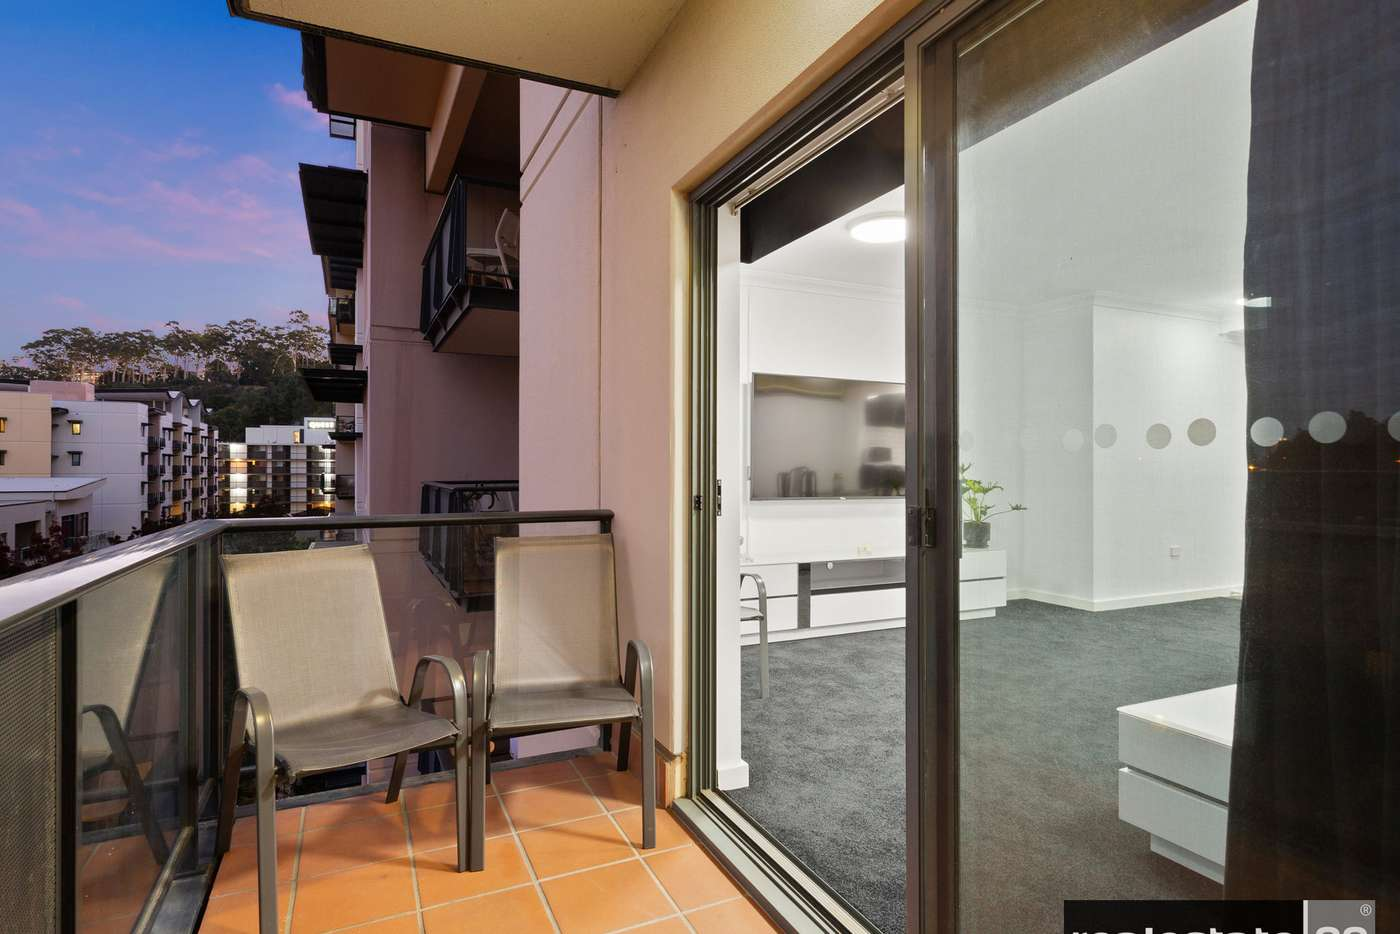 Fifth view of Homely apartment listing, 52/118 Mounts Bay Road, Perth WA 6000